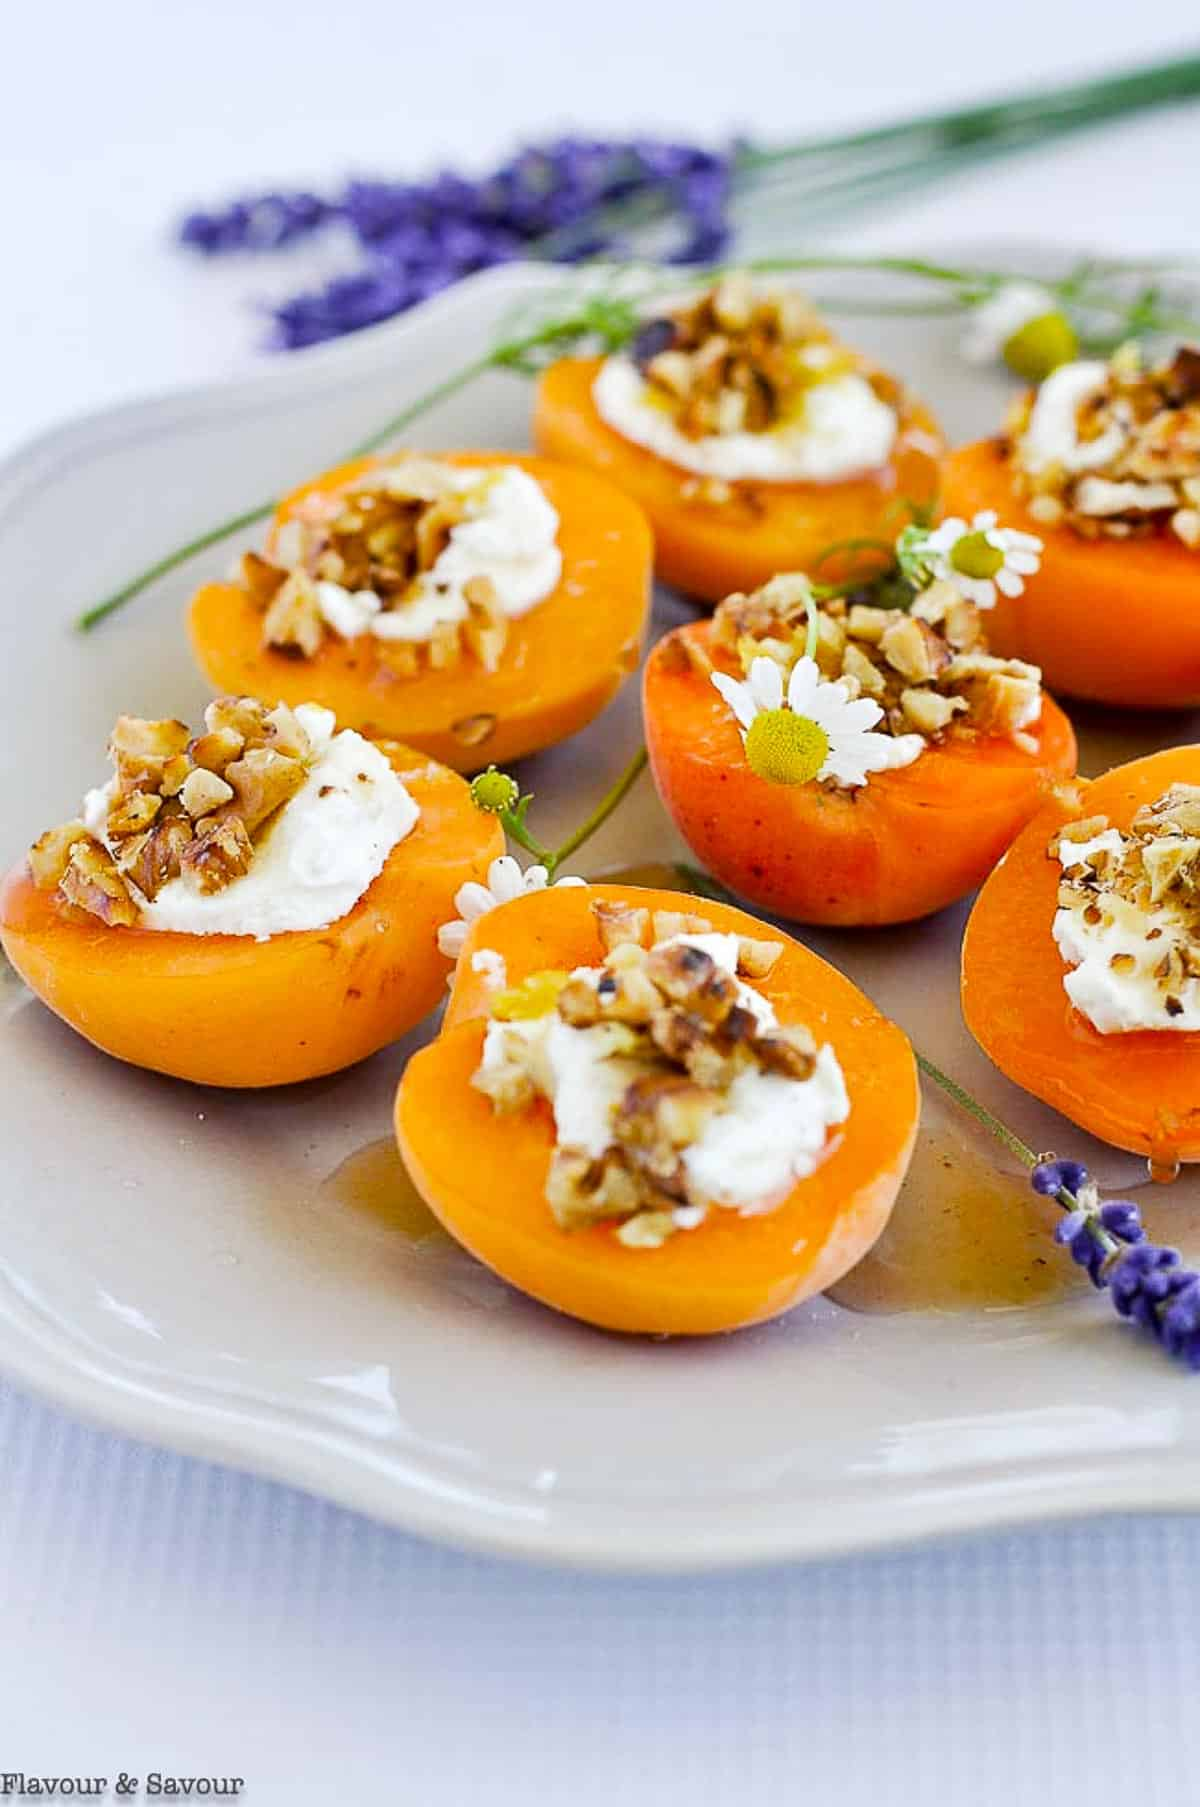 A plate with several fresh apricots topped with goat cheese and lavender honey